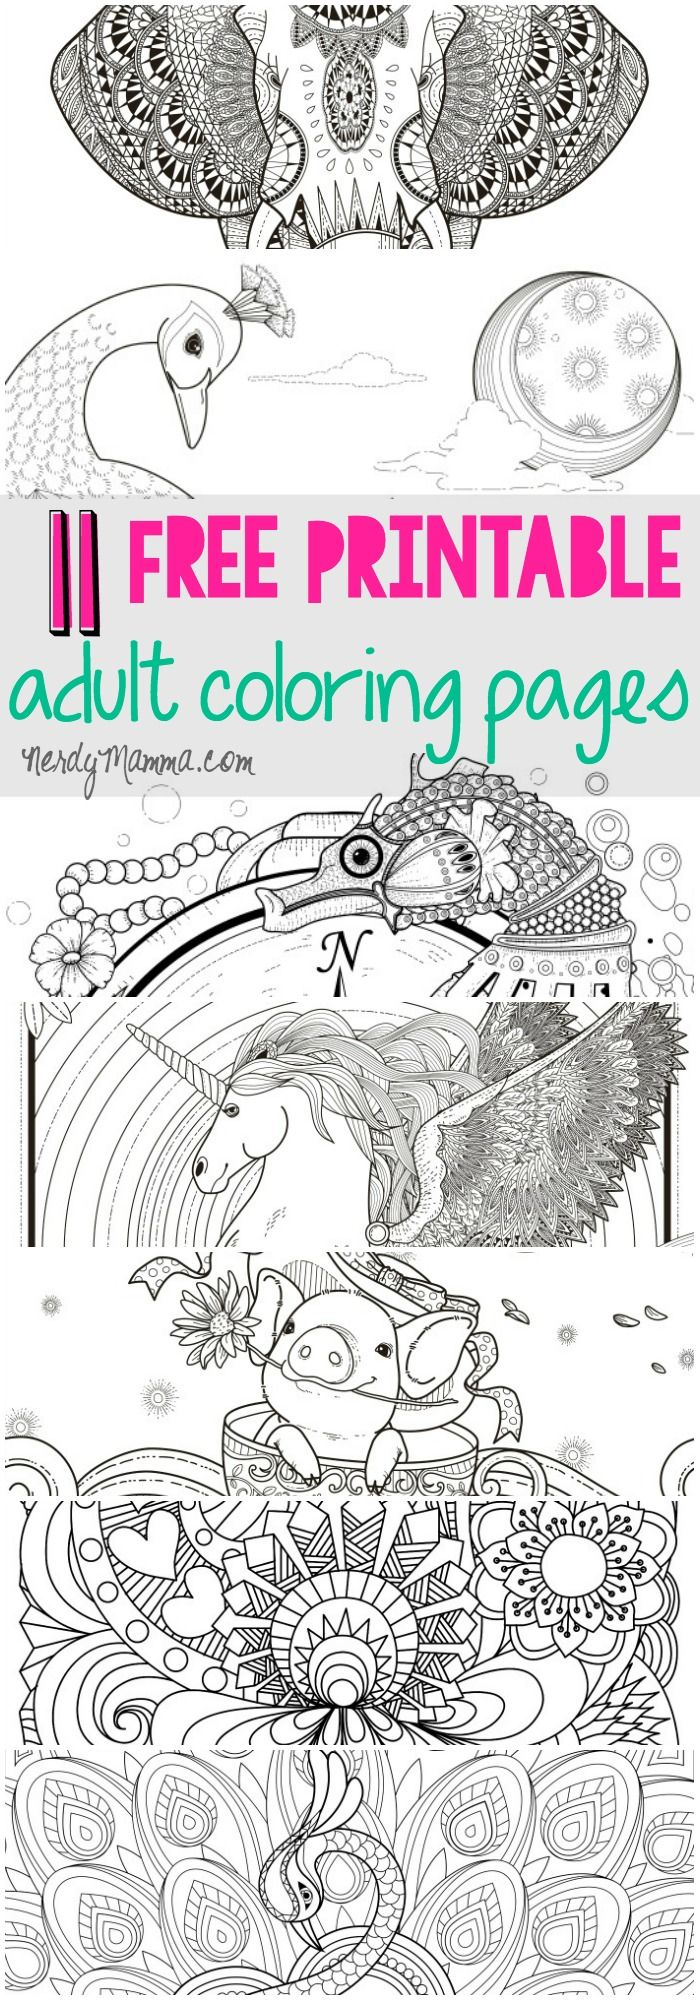 Coloring pages coloring book printable - I Love These Free Printable Adult Coloring Pages